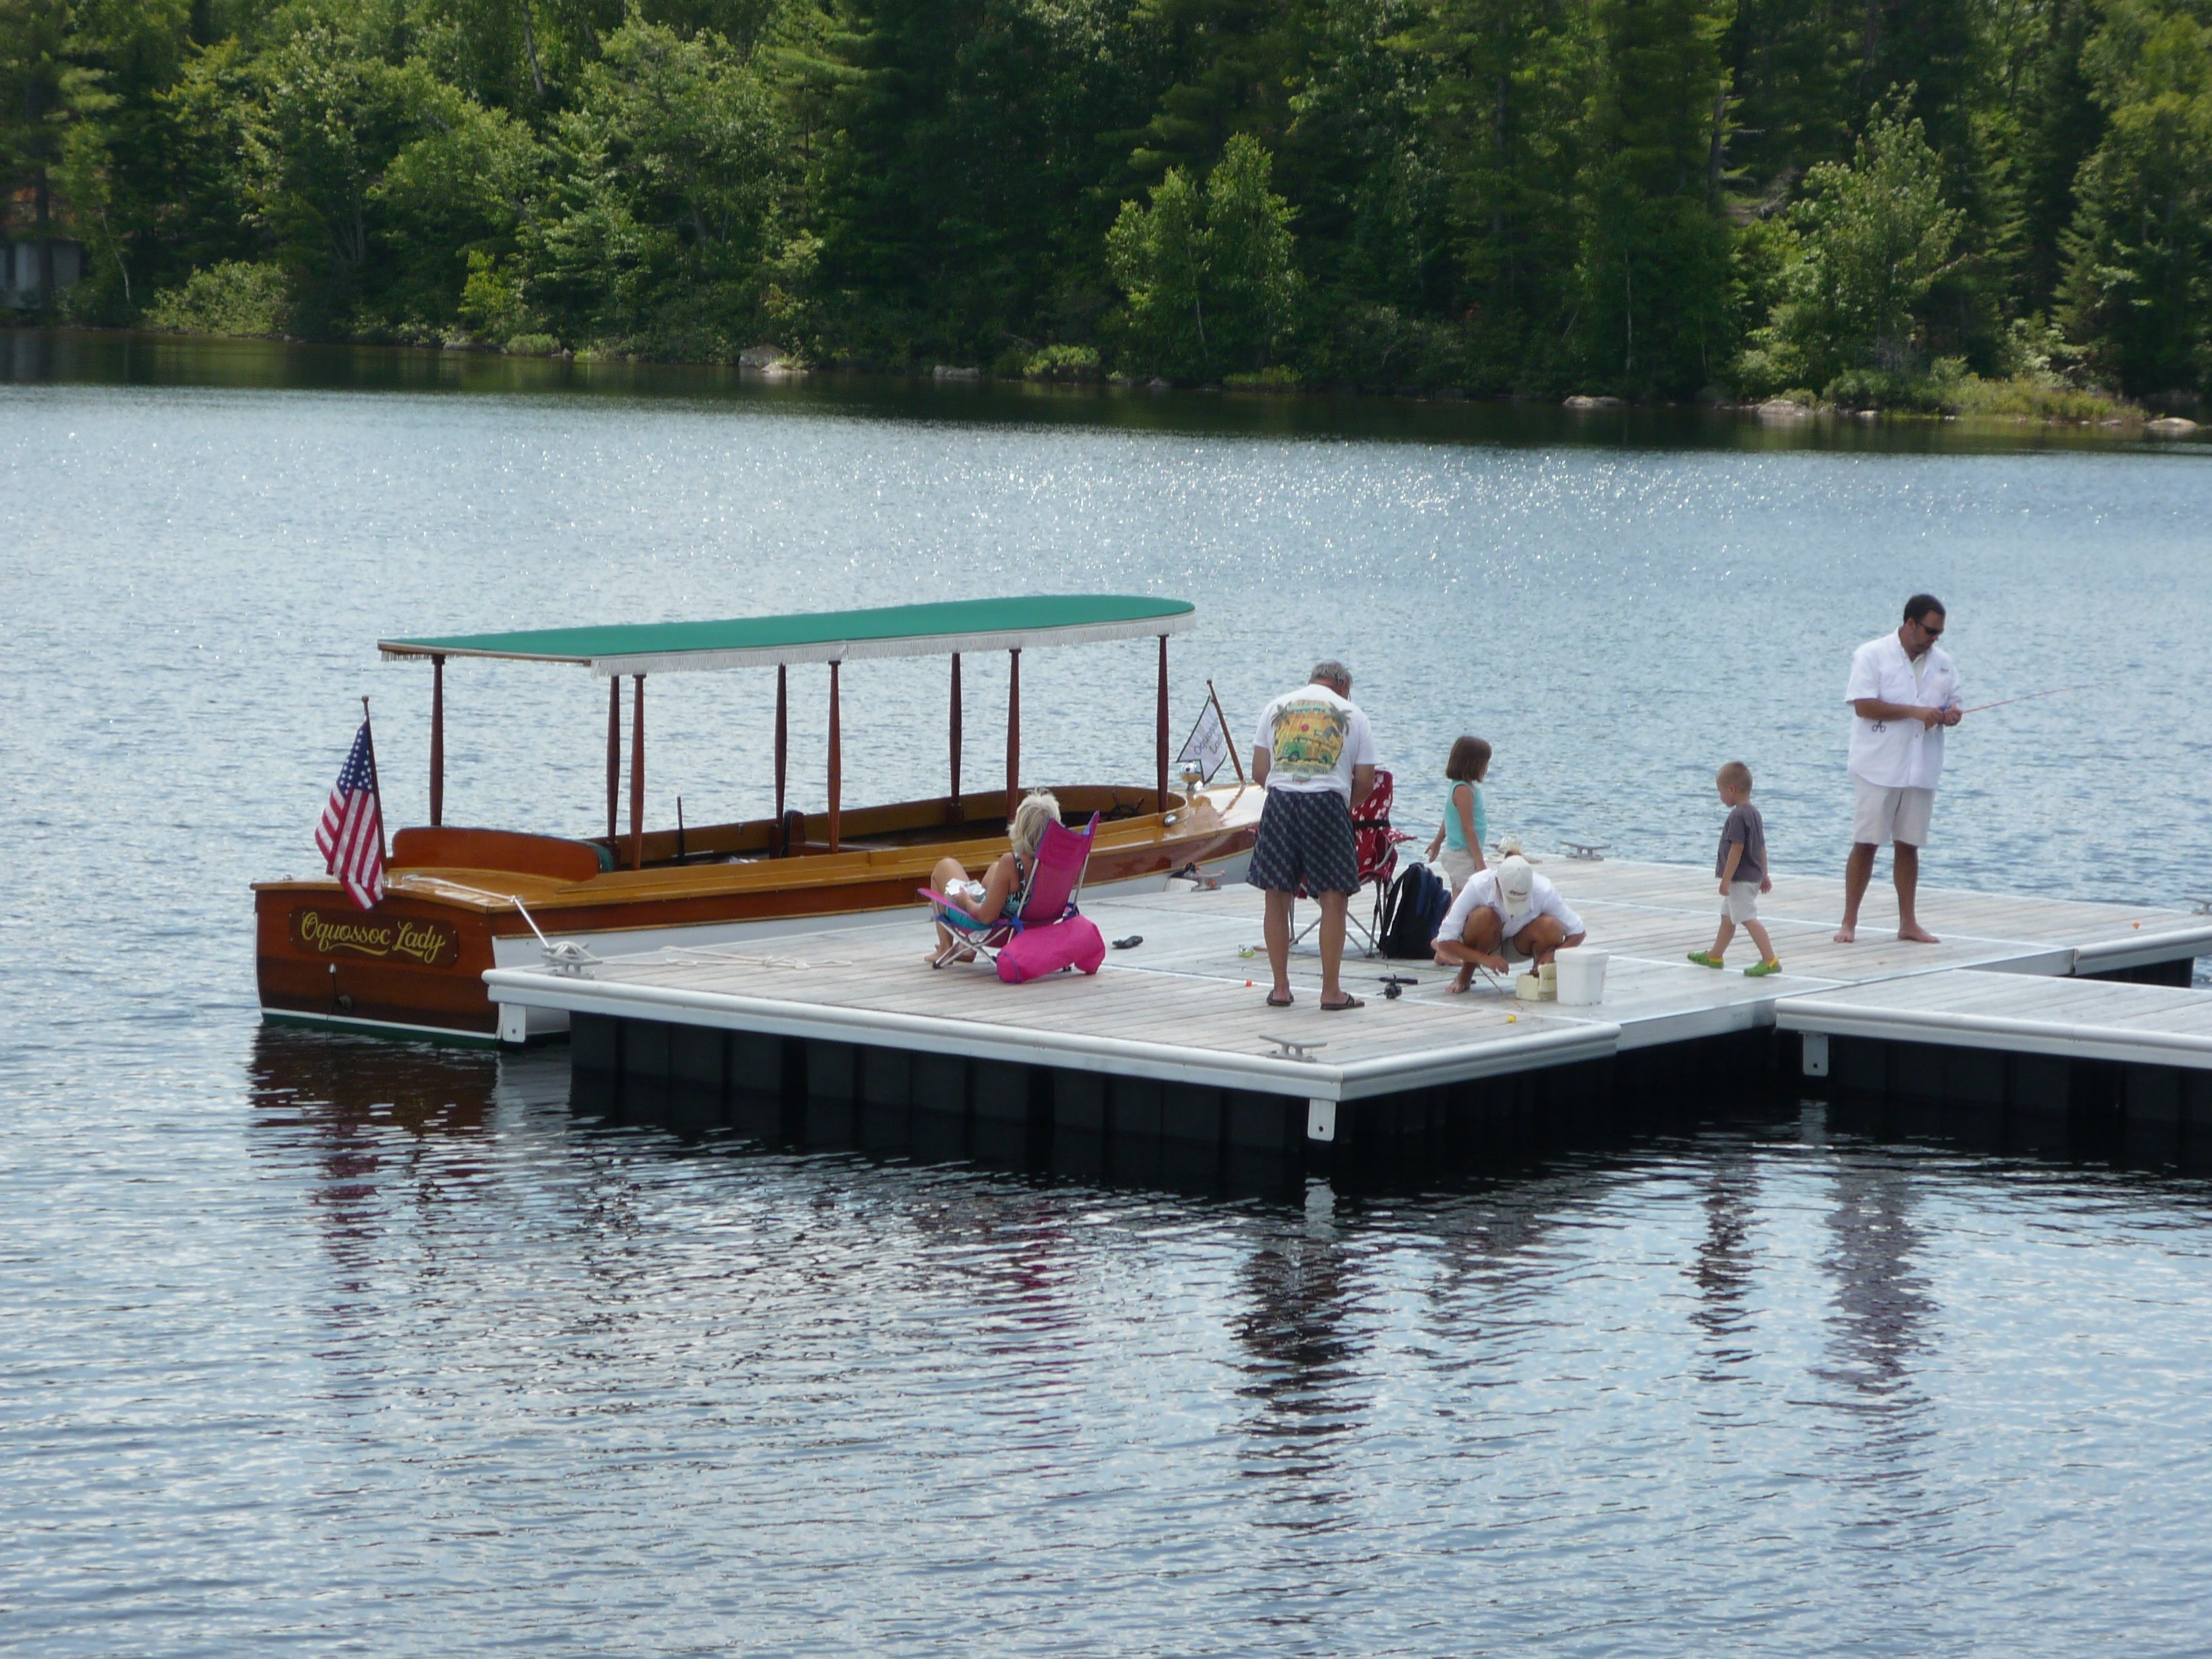 Private Charter on the Oquossoc Lady at Upper Dam (Mooselookmeguntic Lake)